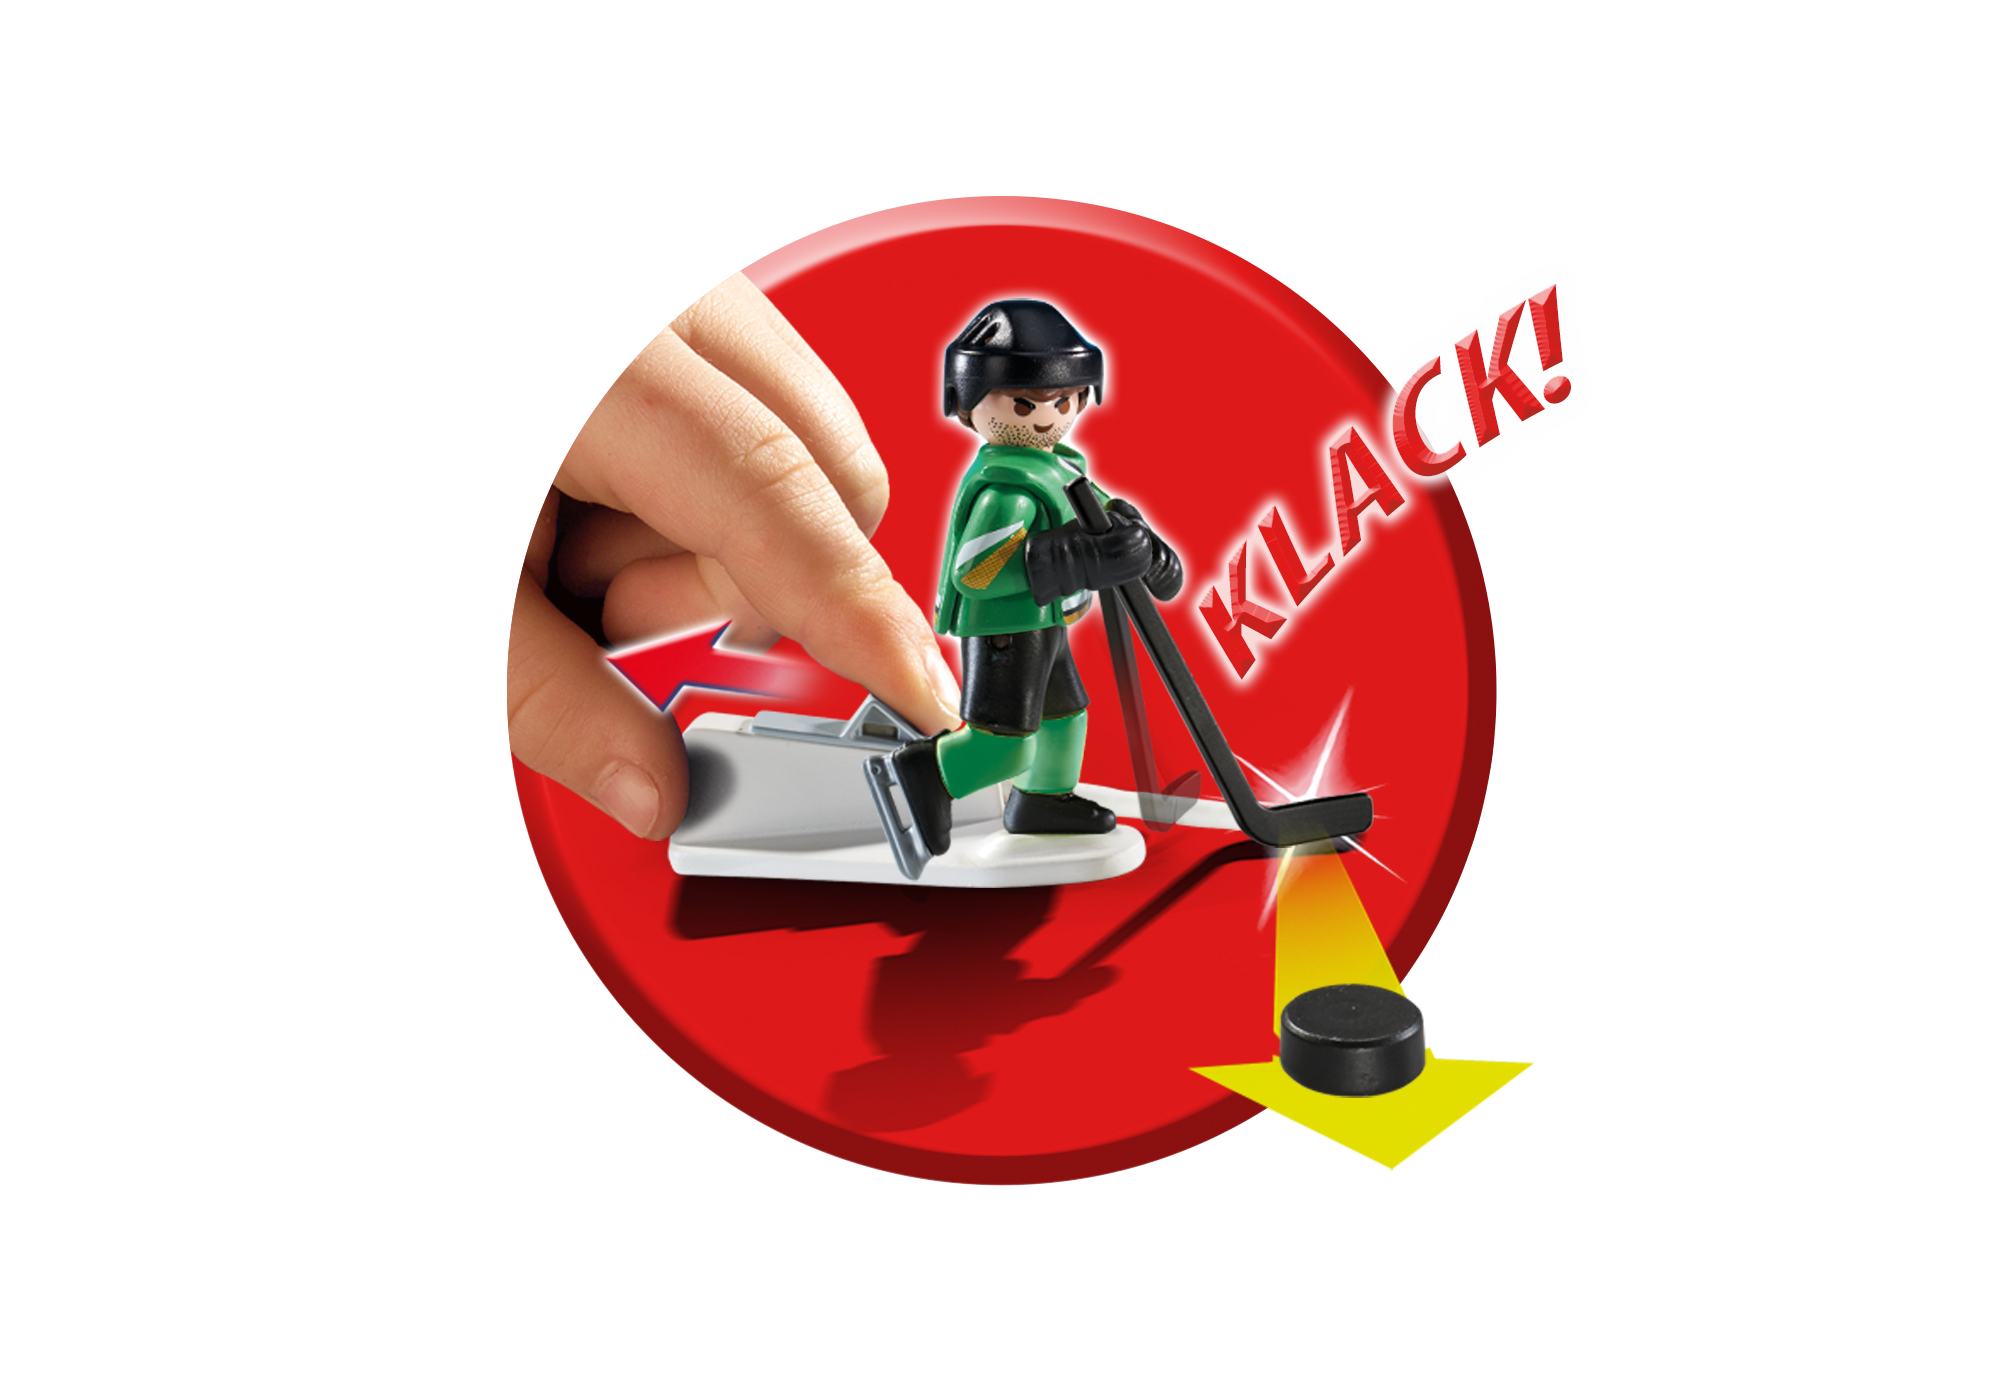 http://media.playmobil.com/i/playmobil/6192_product_extra1